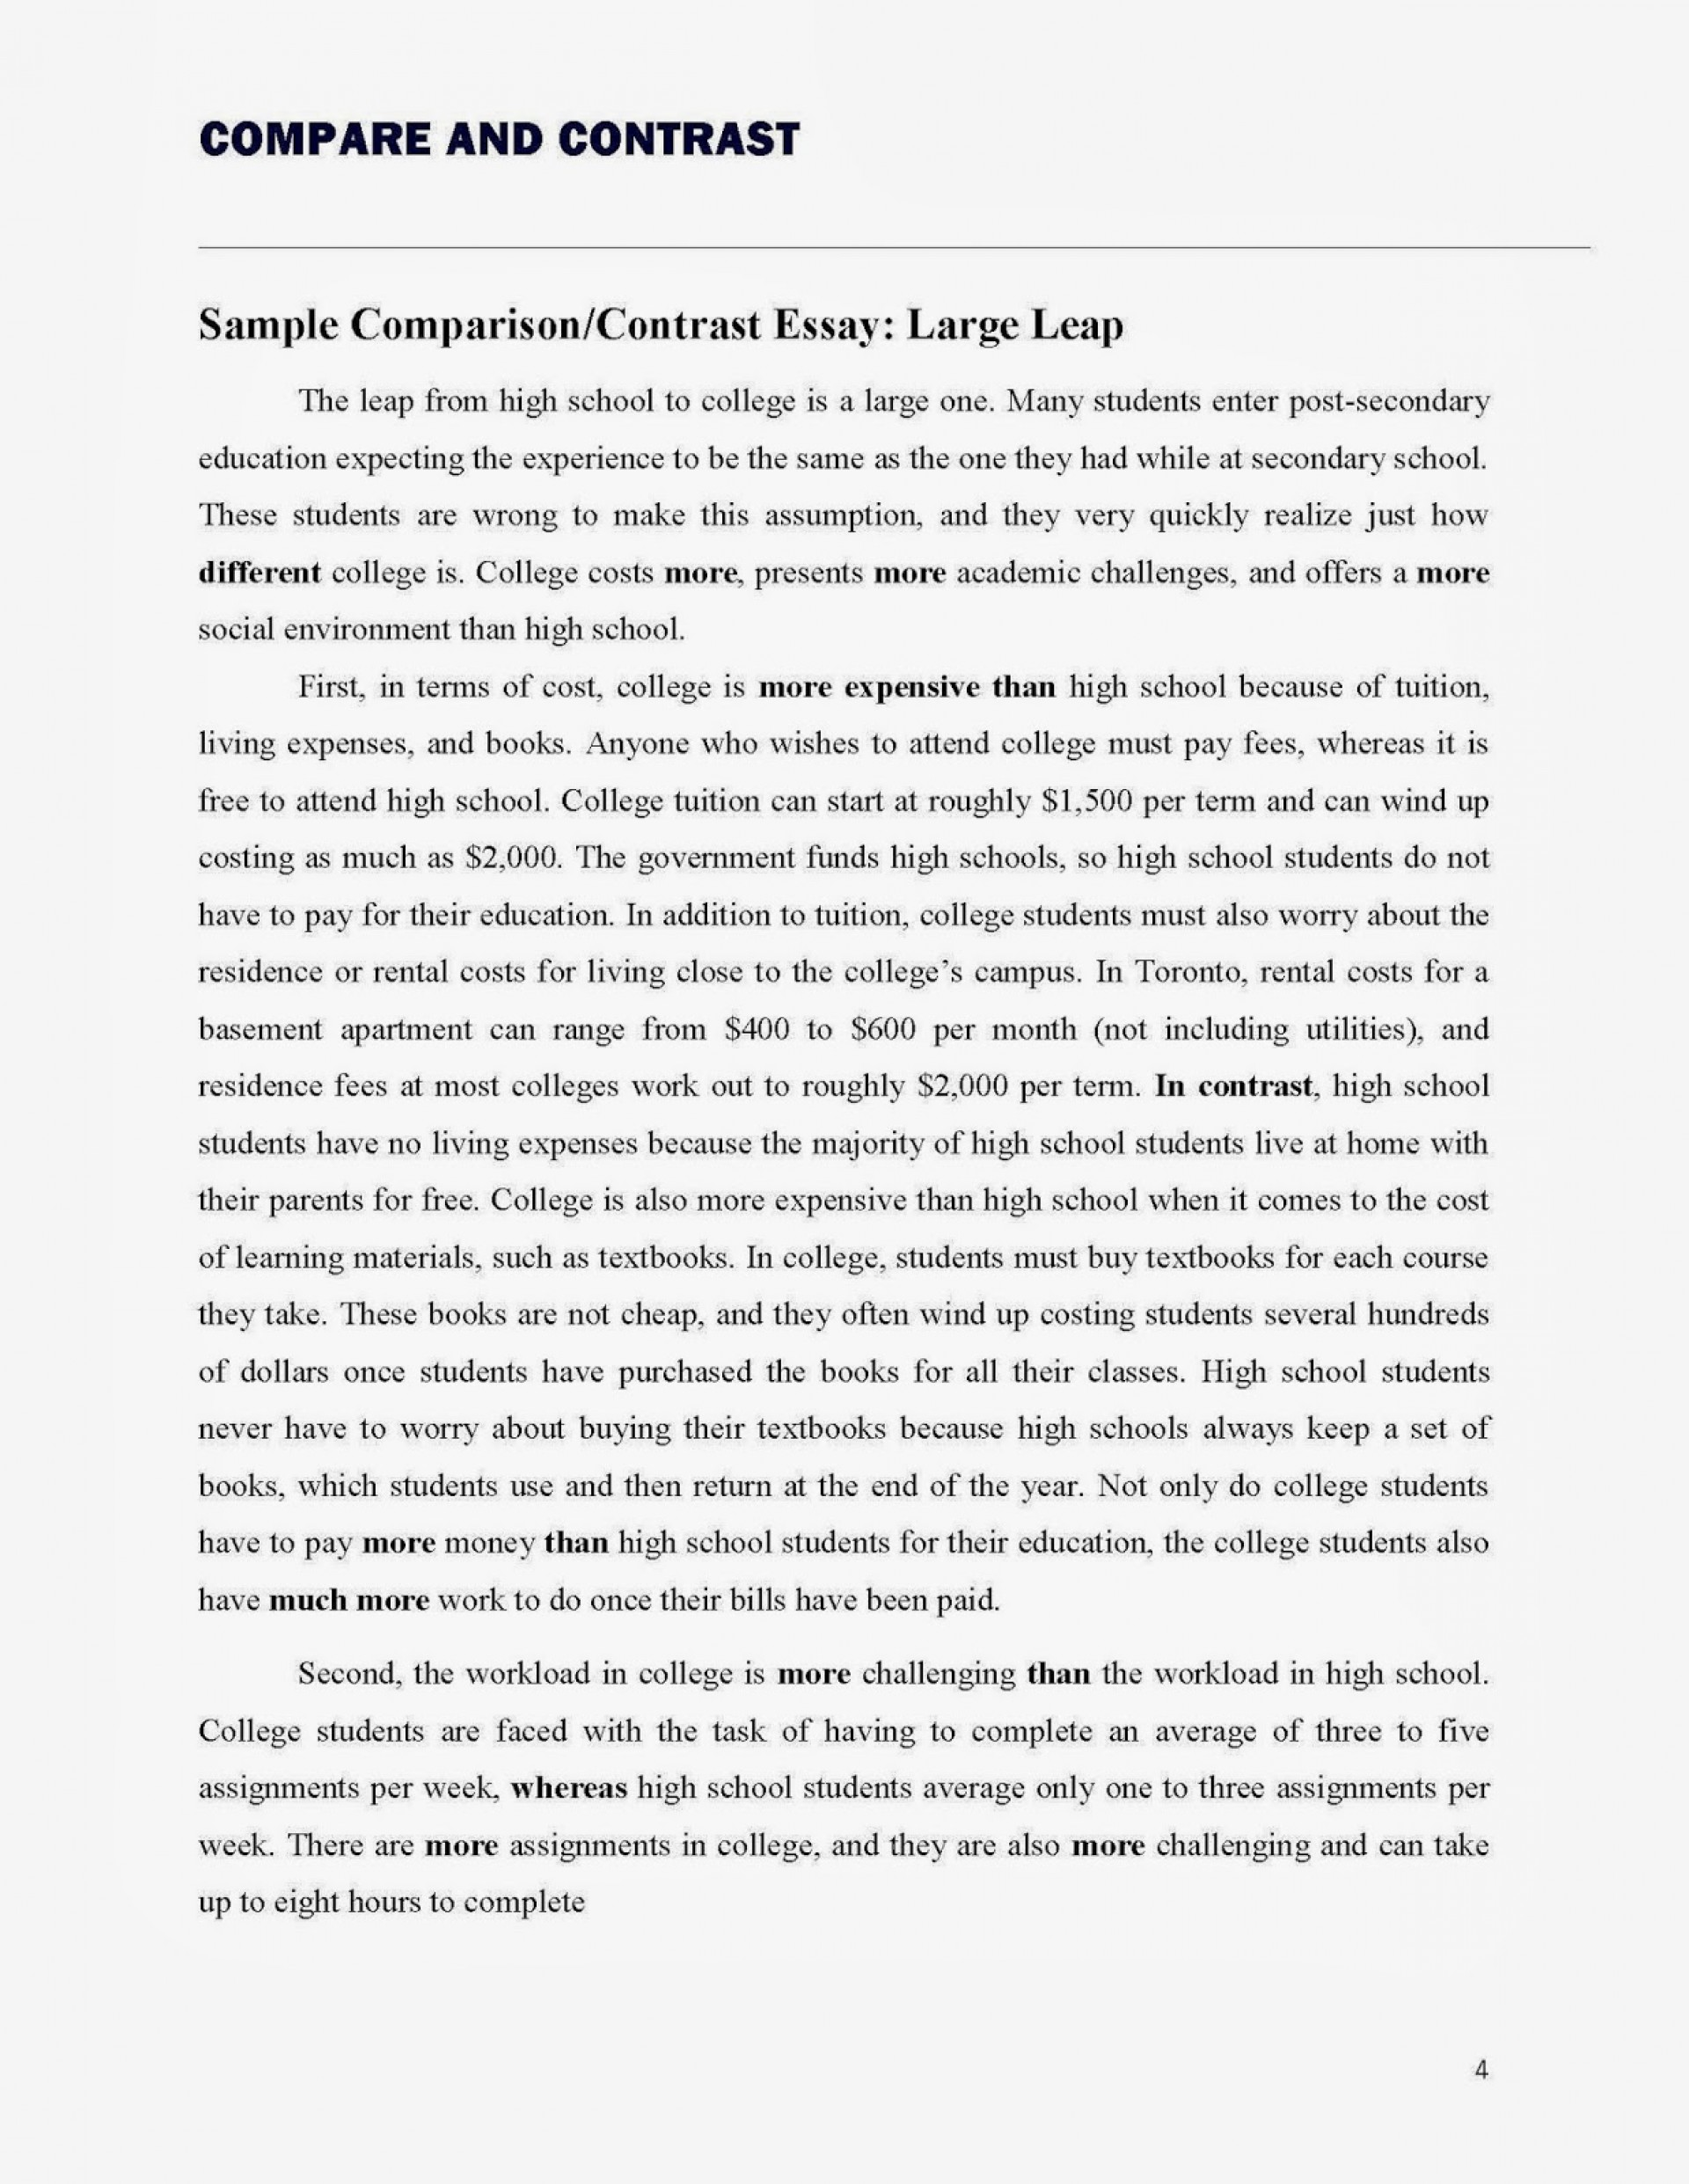 001 Compare20and20contrast20essay Page 4 Compare And Contrast Essay Topics For College Students Beautiful 1920